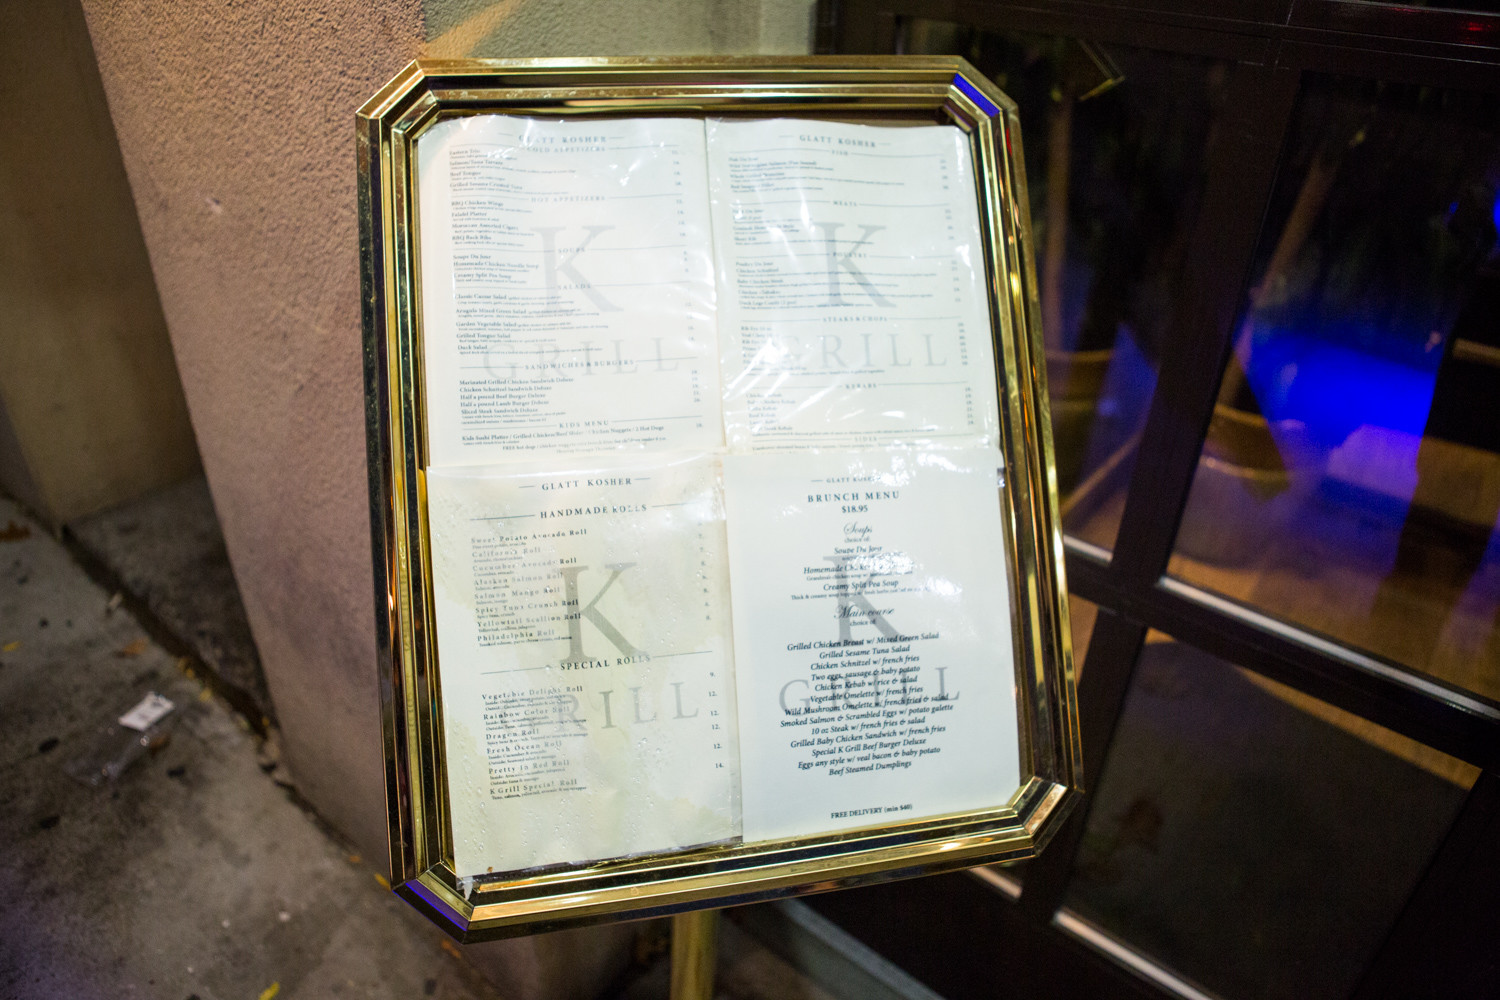 A menu outside of Riverdale K Grill House features a wide array of kosher dishes, with an emphasis on steak, as well as grilled fish and finely seasoned kebabs. K Grill's owner, Dmitriy Berezovskiy, wanted to offer the community a kosher fine-dining concept, but the local rabbinical supervision imposed severe restrictions on which foods he was allowed to serve, making it difficult for him to compete with other neighborhood restaurants.